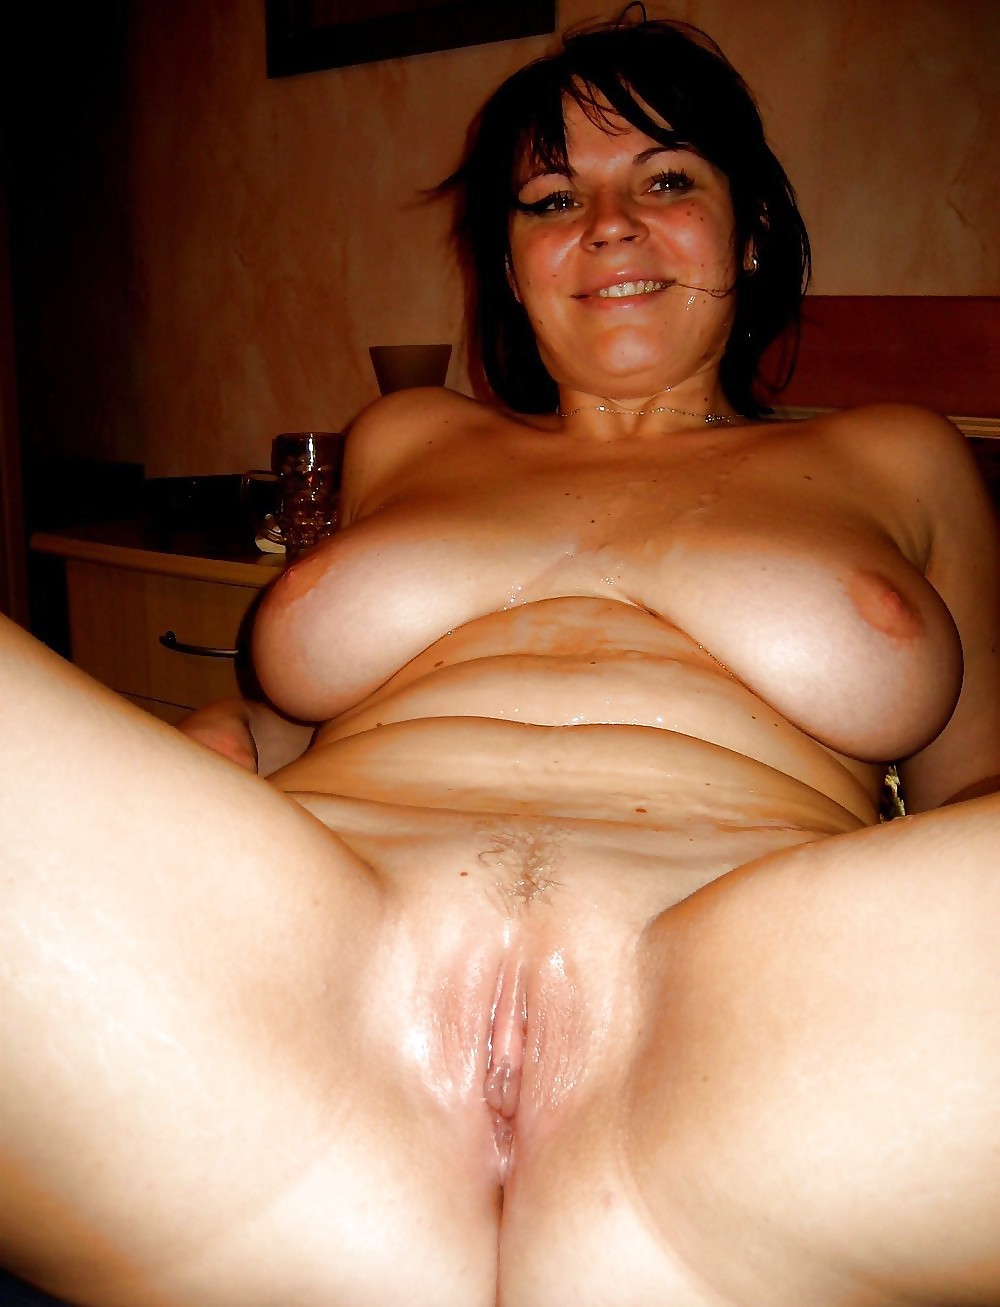 Realmonstersex fuckng pussy nude image